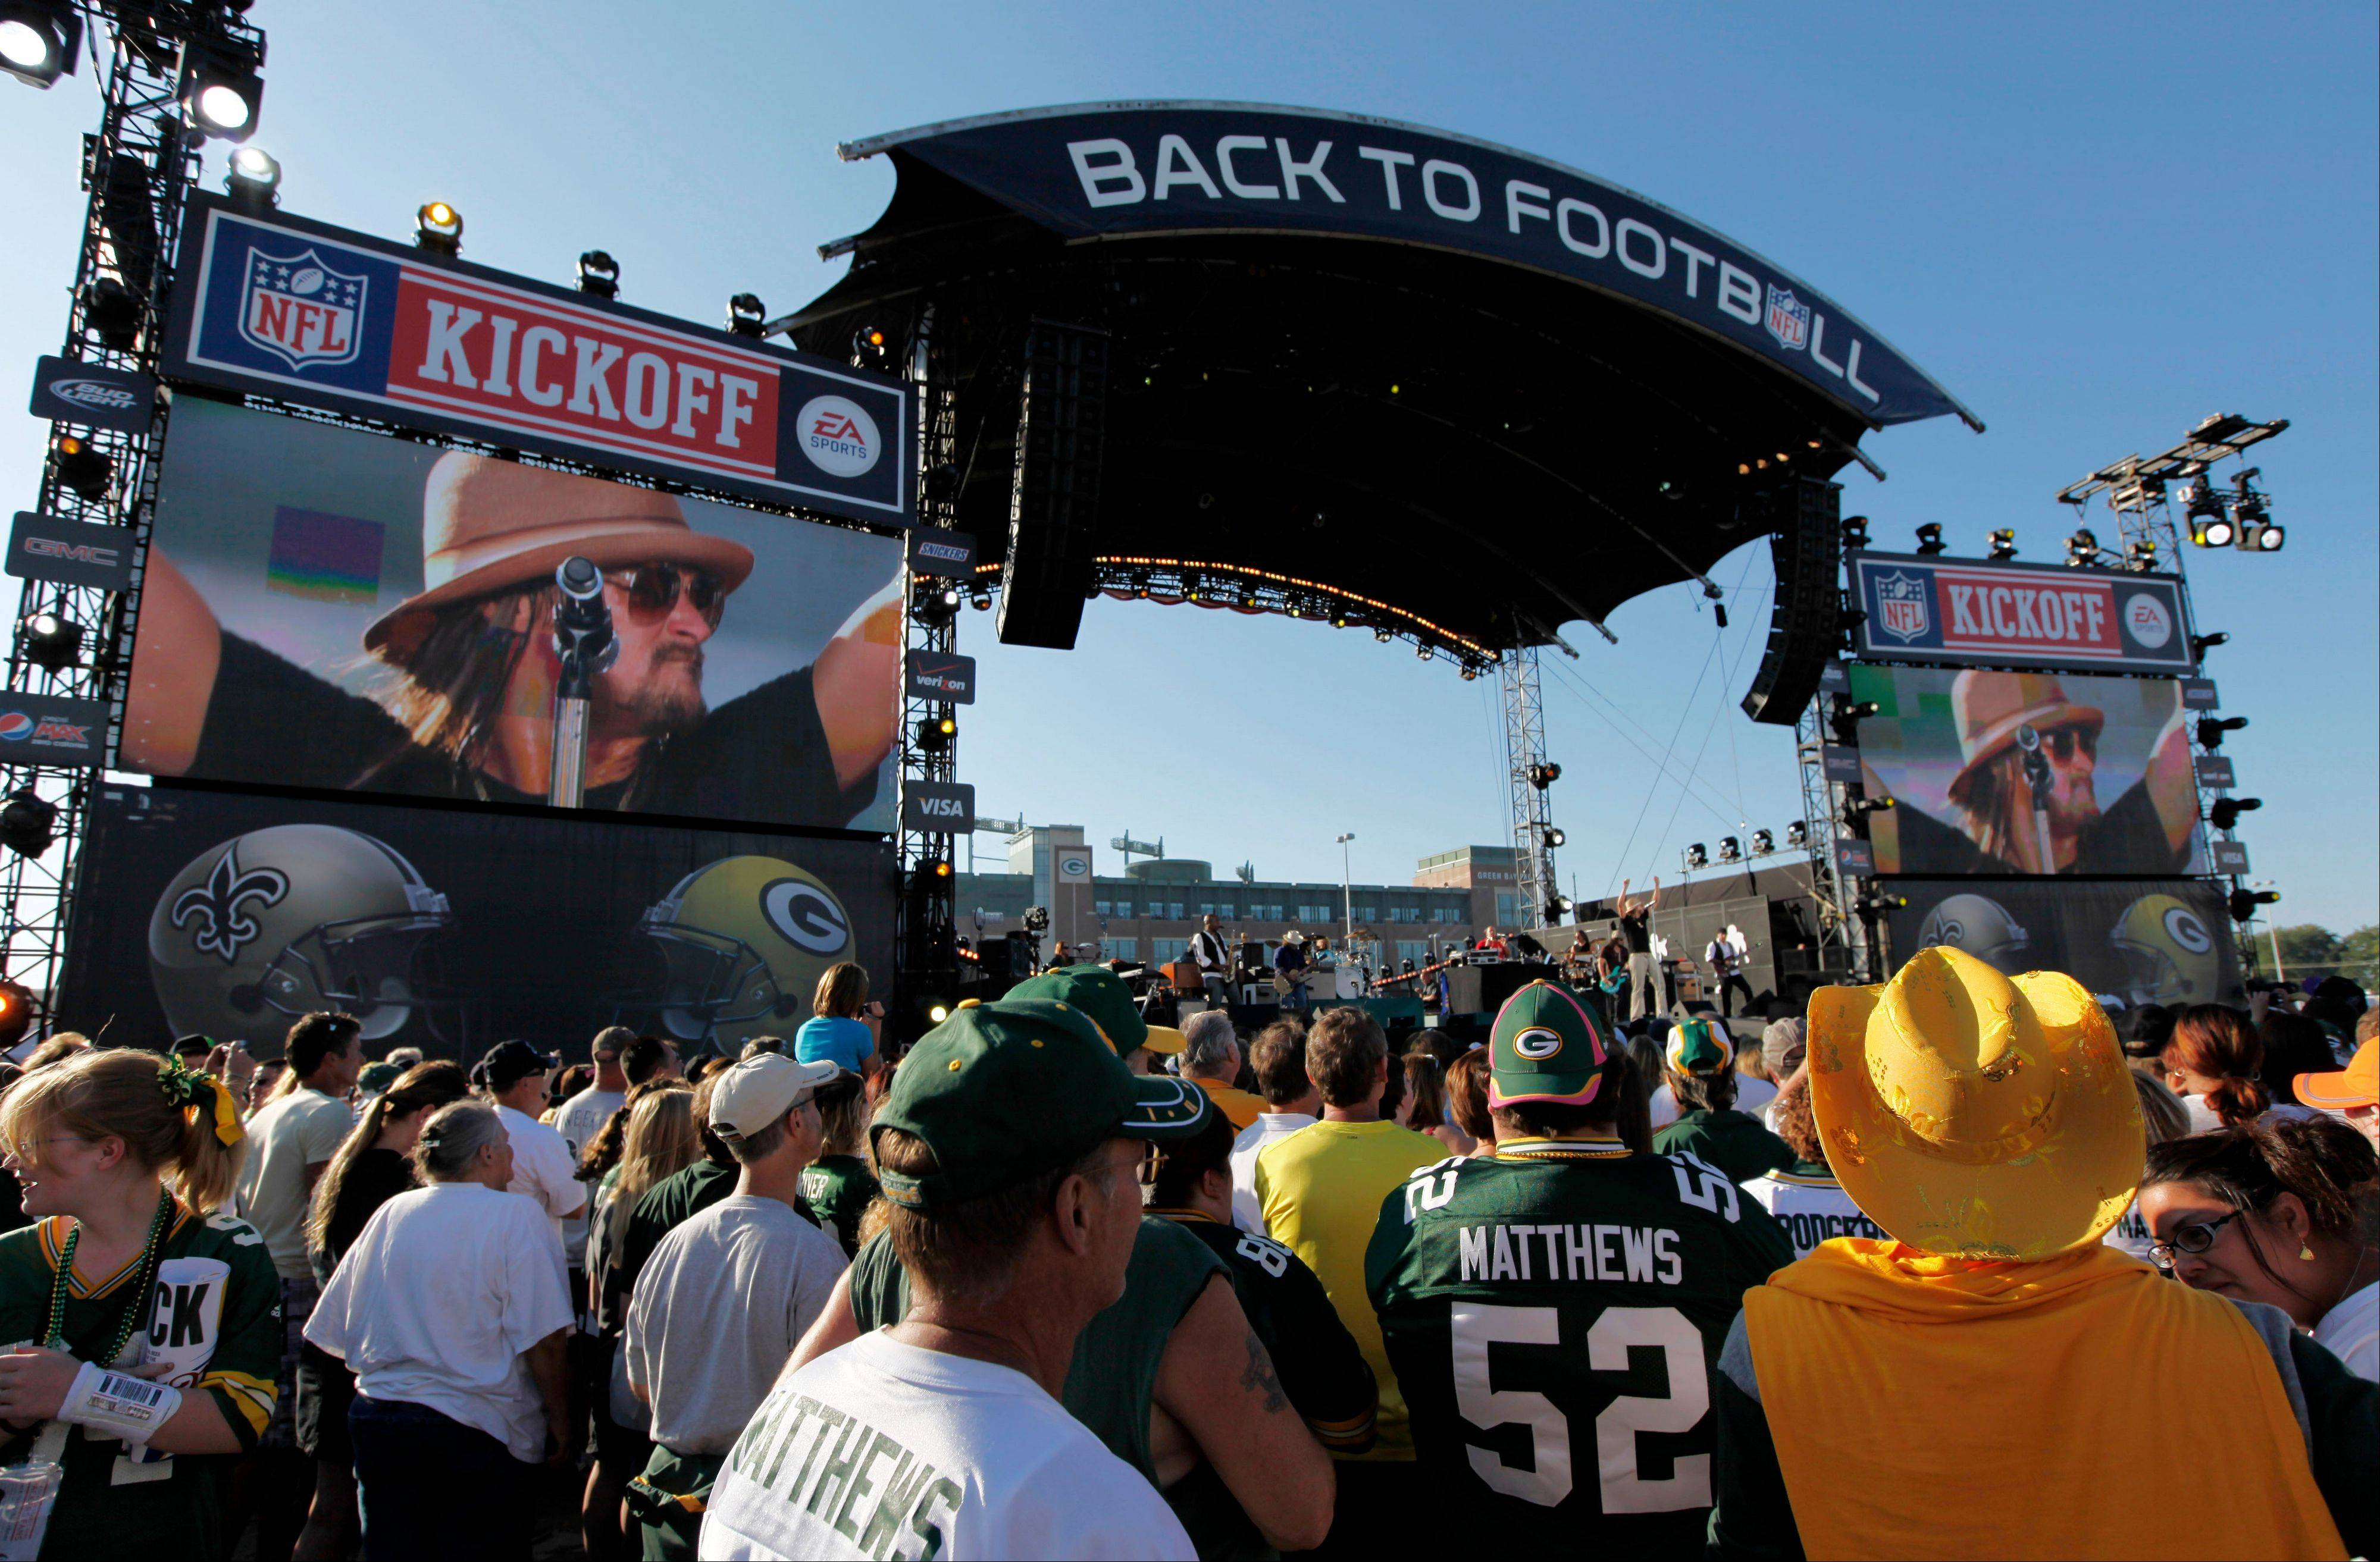 Kid Rock performs before the first NFL game of the season Thursday, between the Green Bay Packers and the New Orleans Saints.